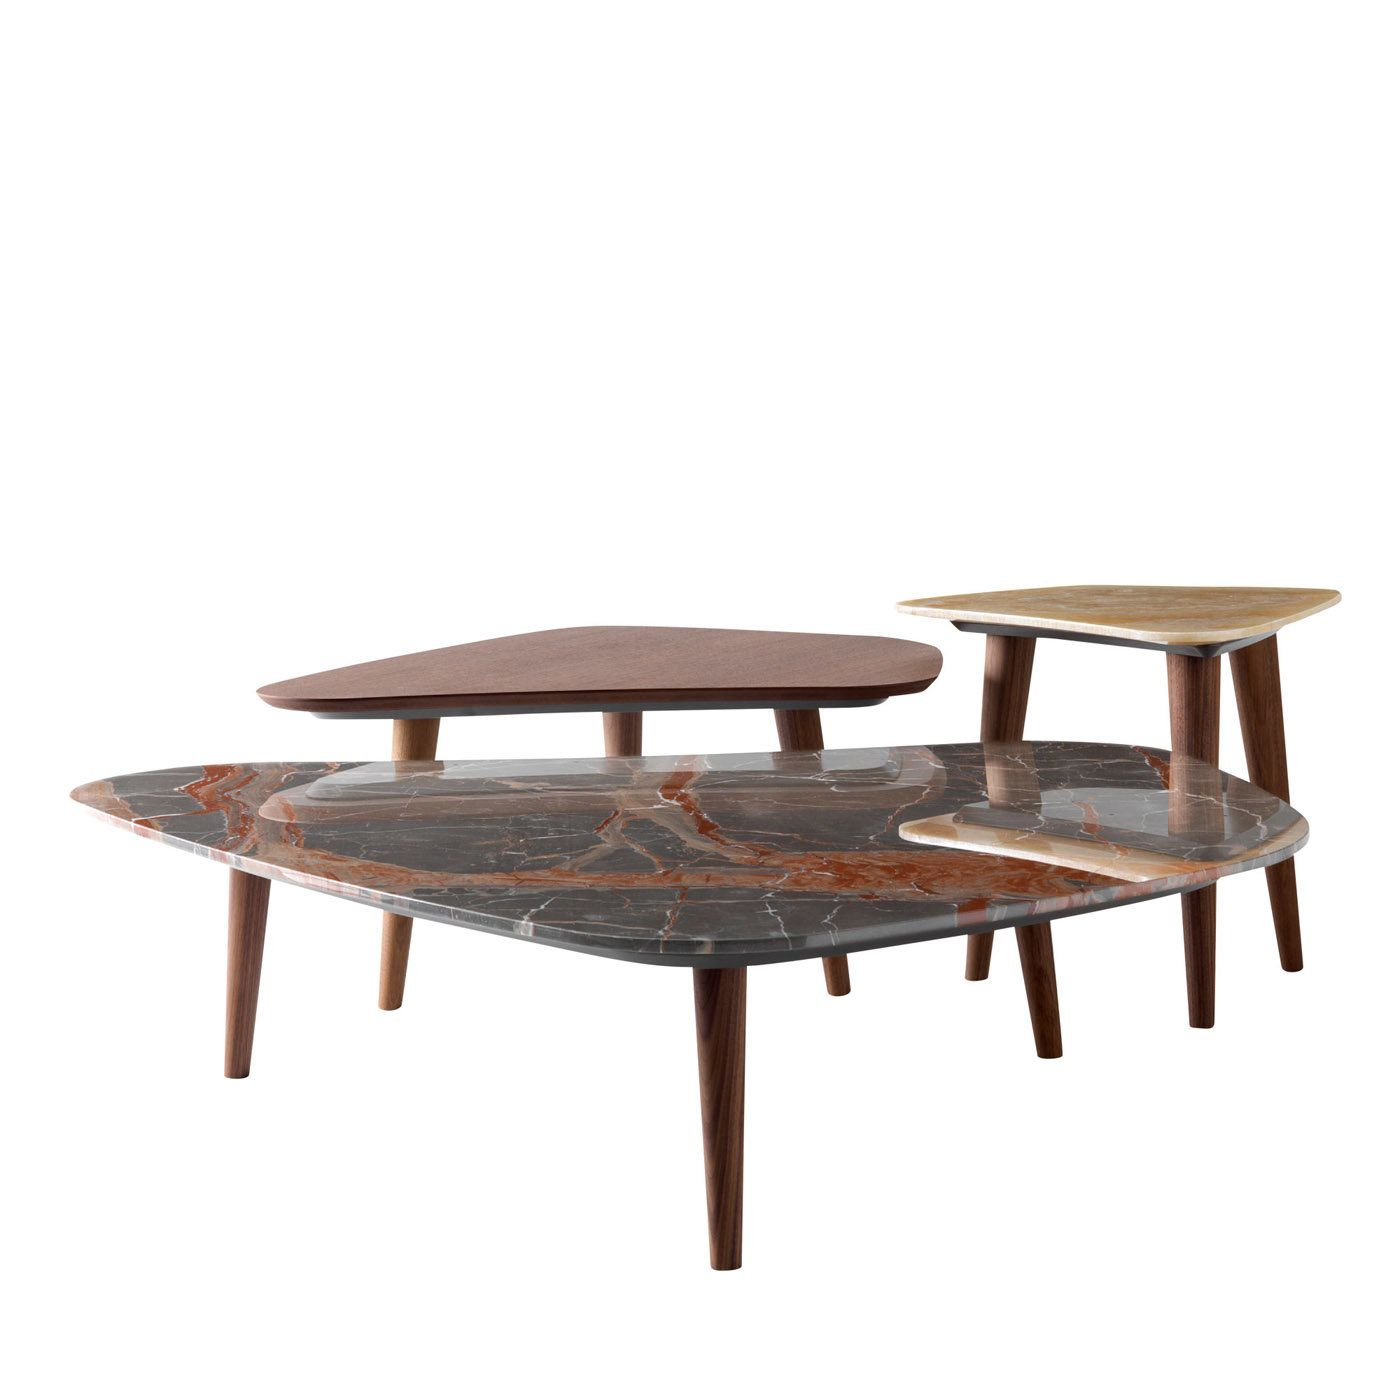 Set Of 3 Stone Coffee Tables In 2021 Coffee Table Stone Coffee Table Modern Side Table [ 1400 x 1400 Pixel ]